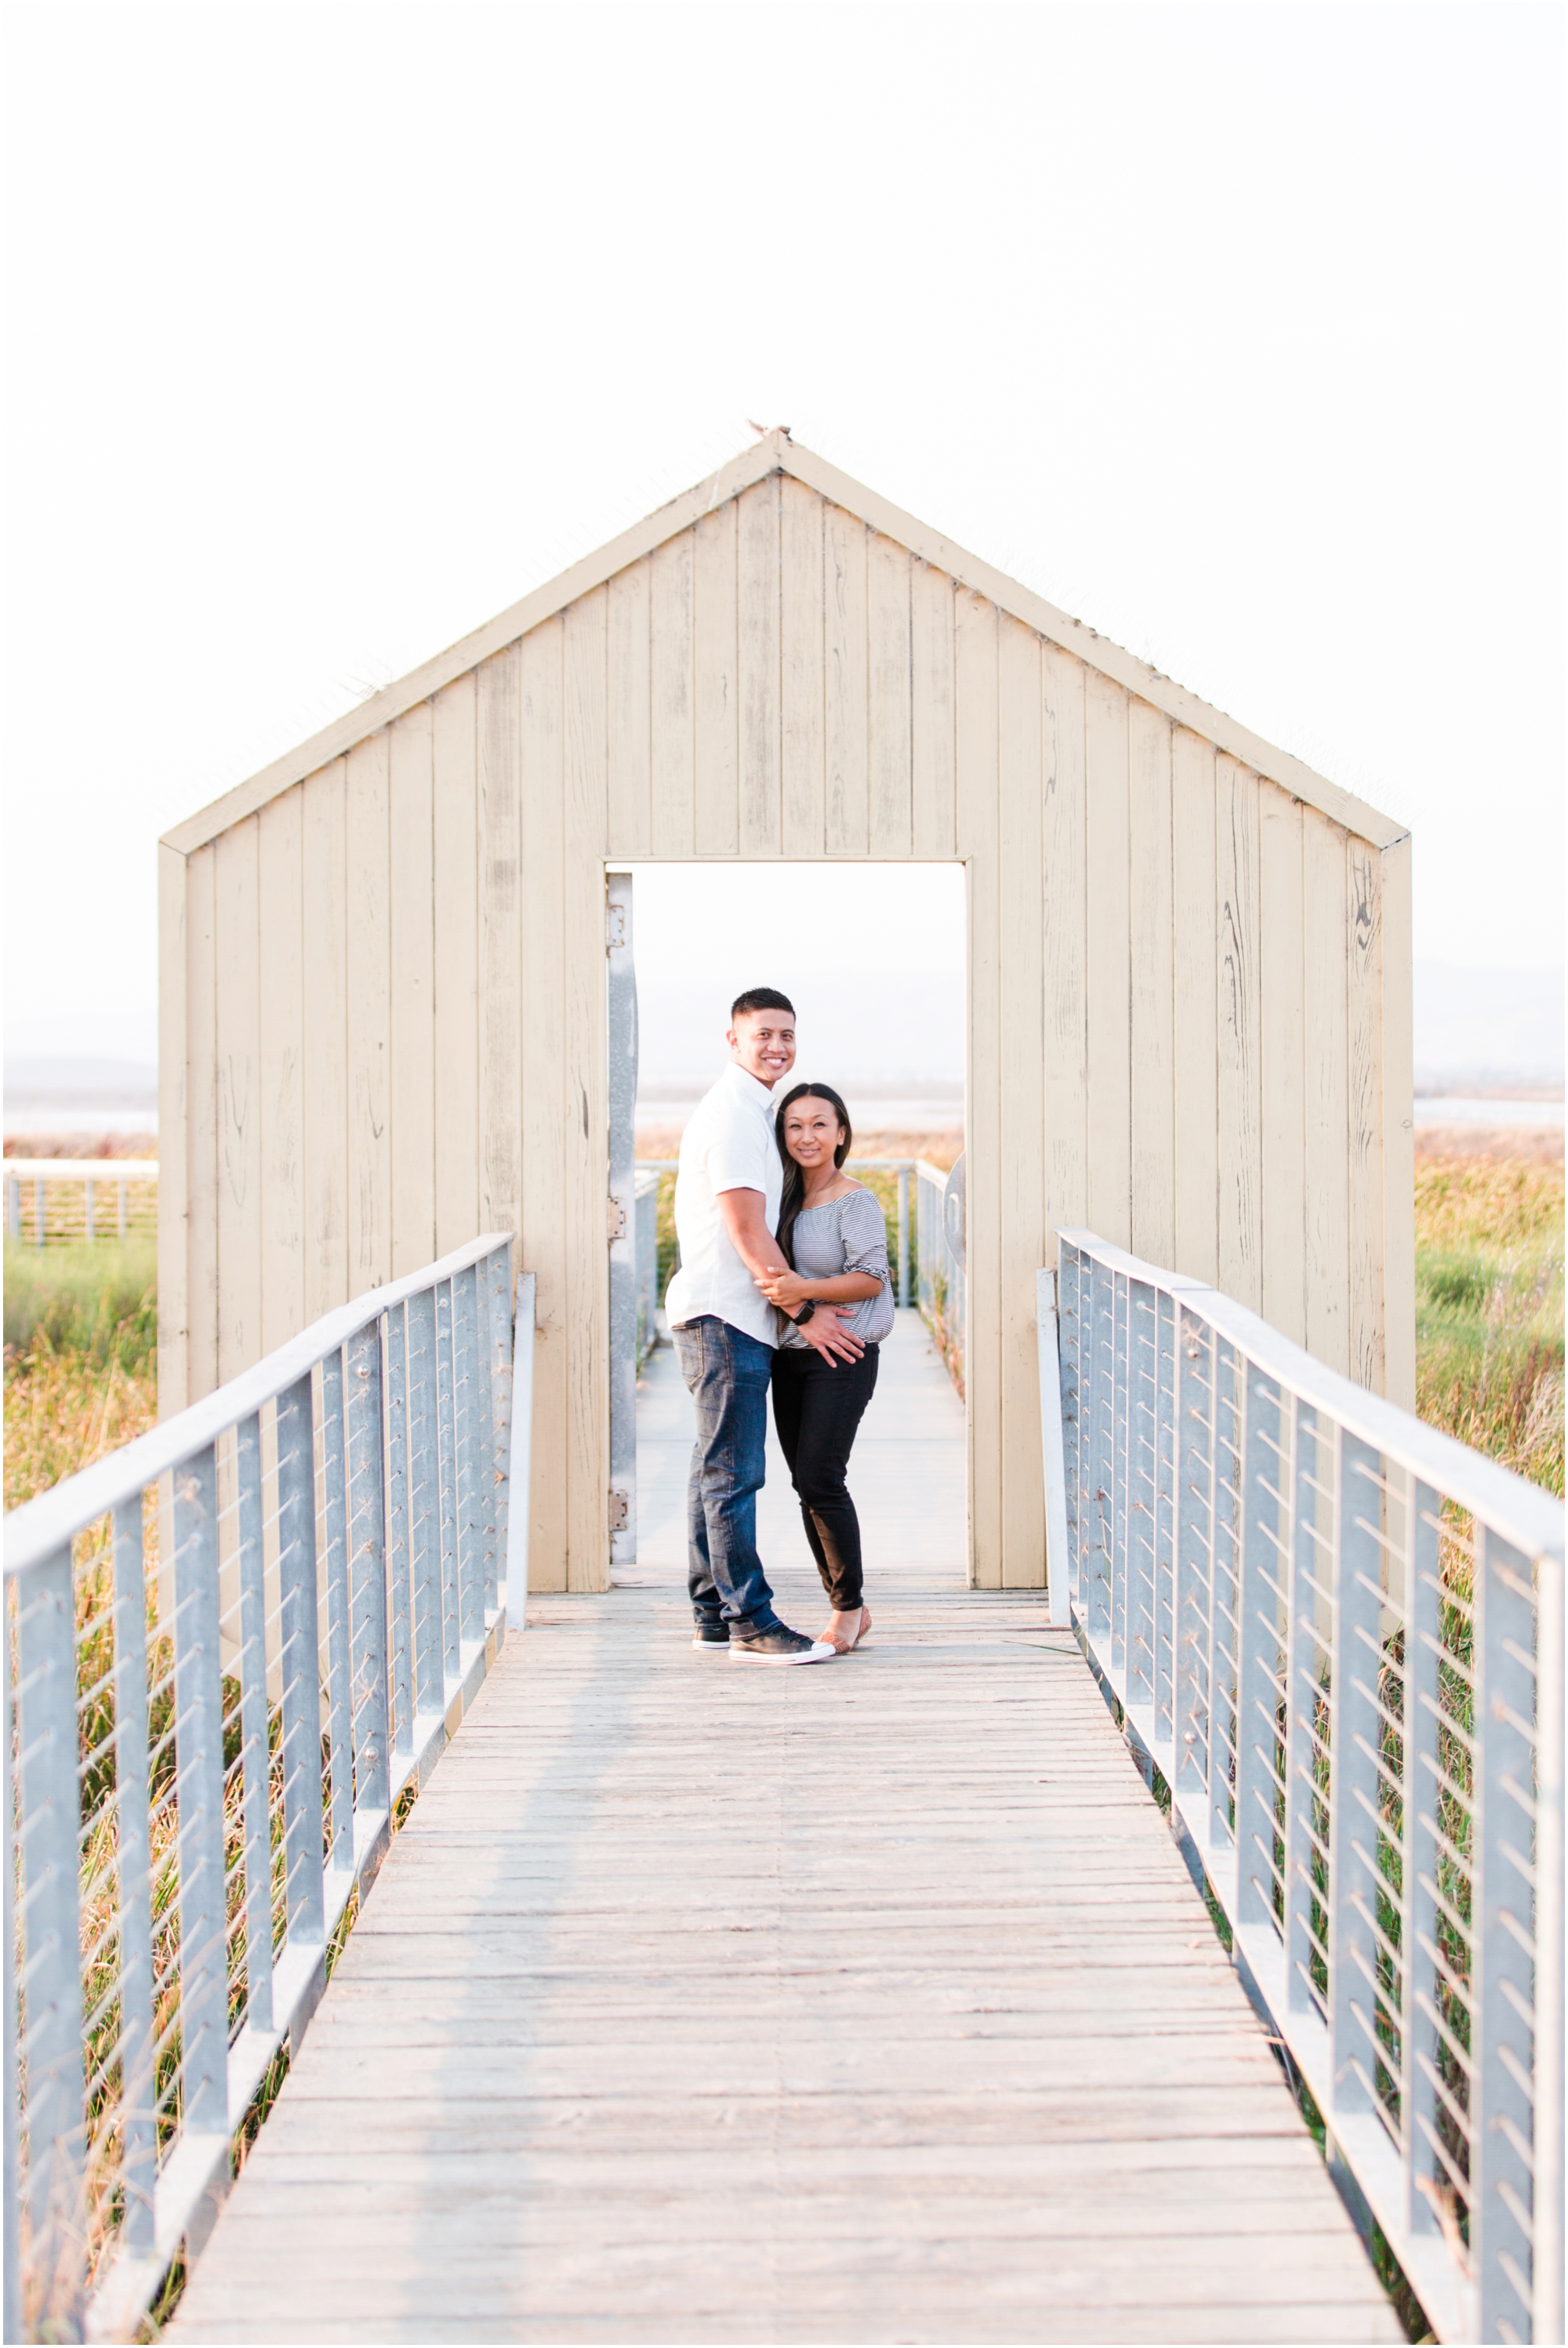 Willow Glan & Alviso Marina engagement pictures by Briana Calderon Photography_2111.jpg